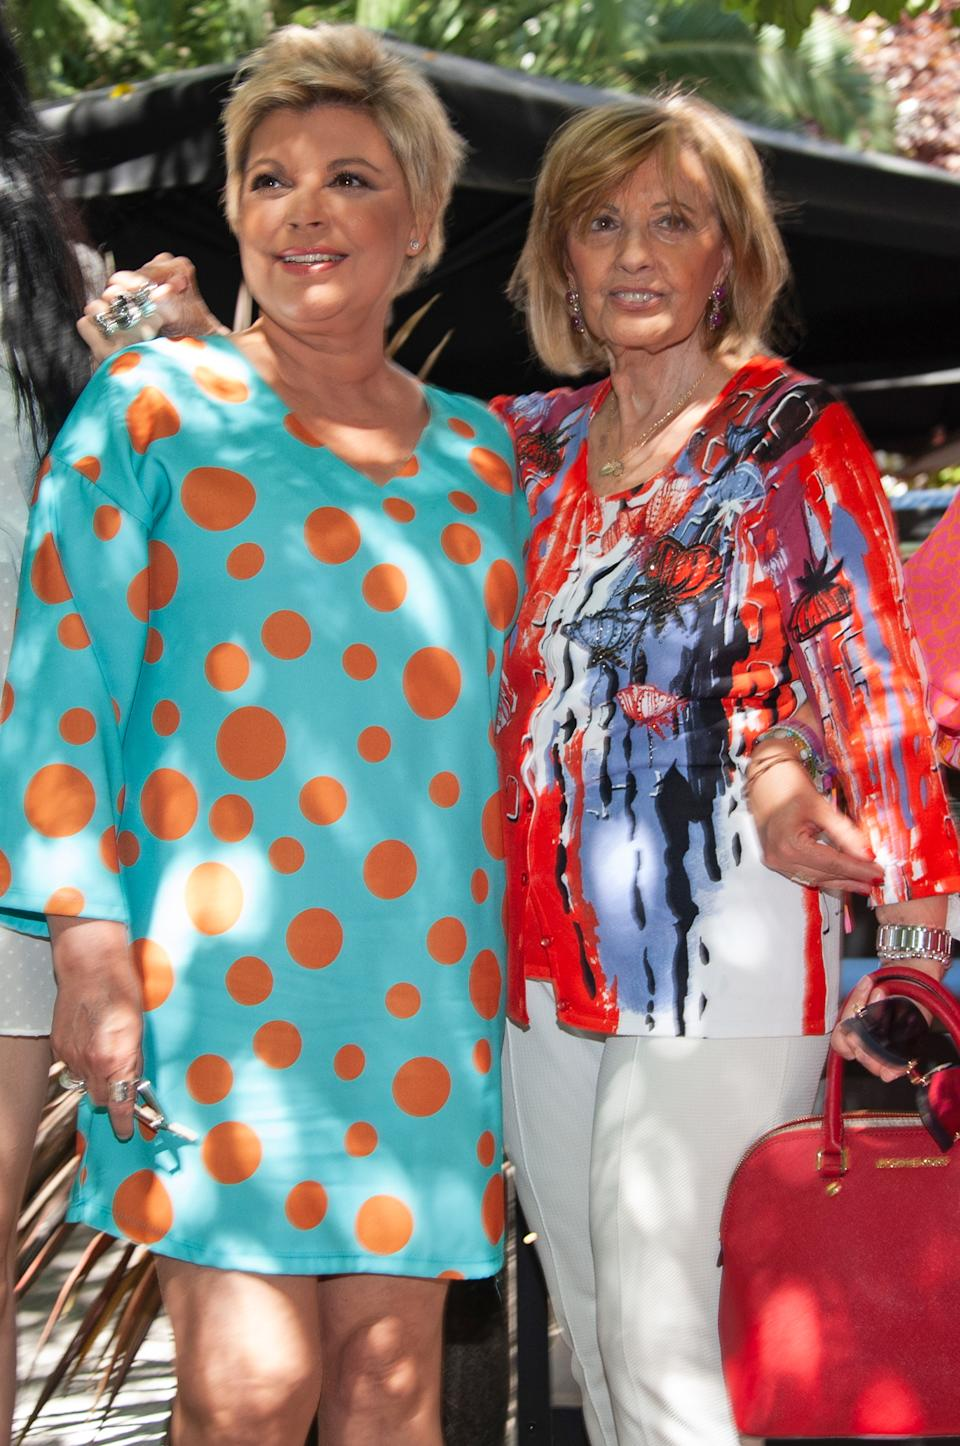 MADRID, SPAIN - JUNE 18: Terelu Campos (L) and Maria Teresa Campos (R) attends a lunch to celebrate the Maria Teresa Campos's 78th birthday on June 18, 2019 in Madrid, Spain. (Photo by Europa Press Entertainment/Europa Press via Getty Images)